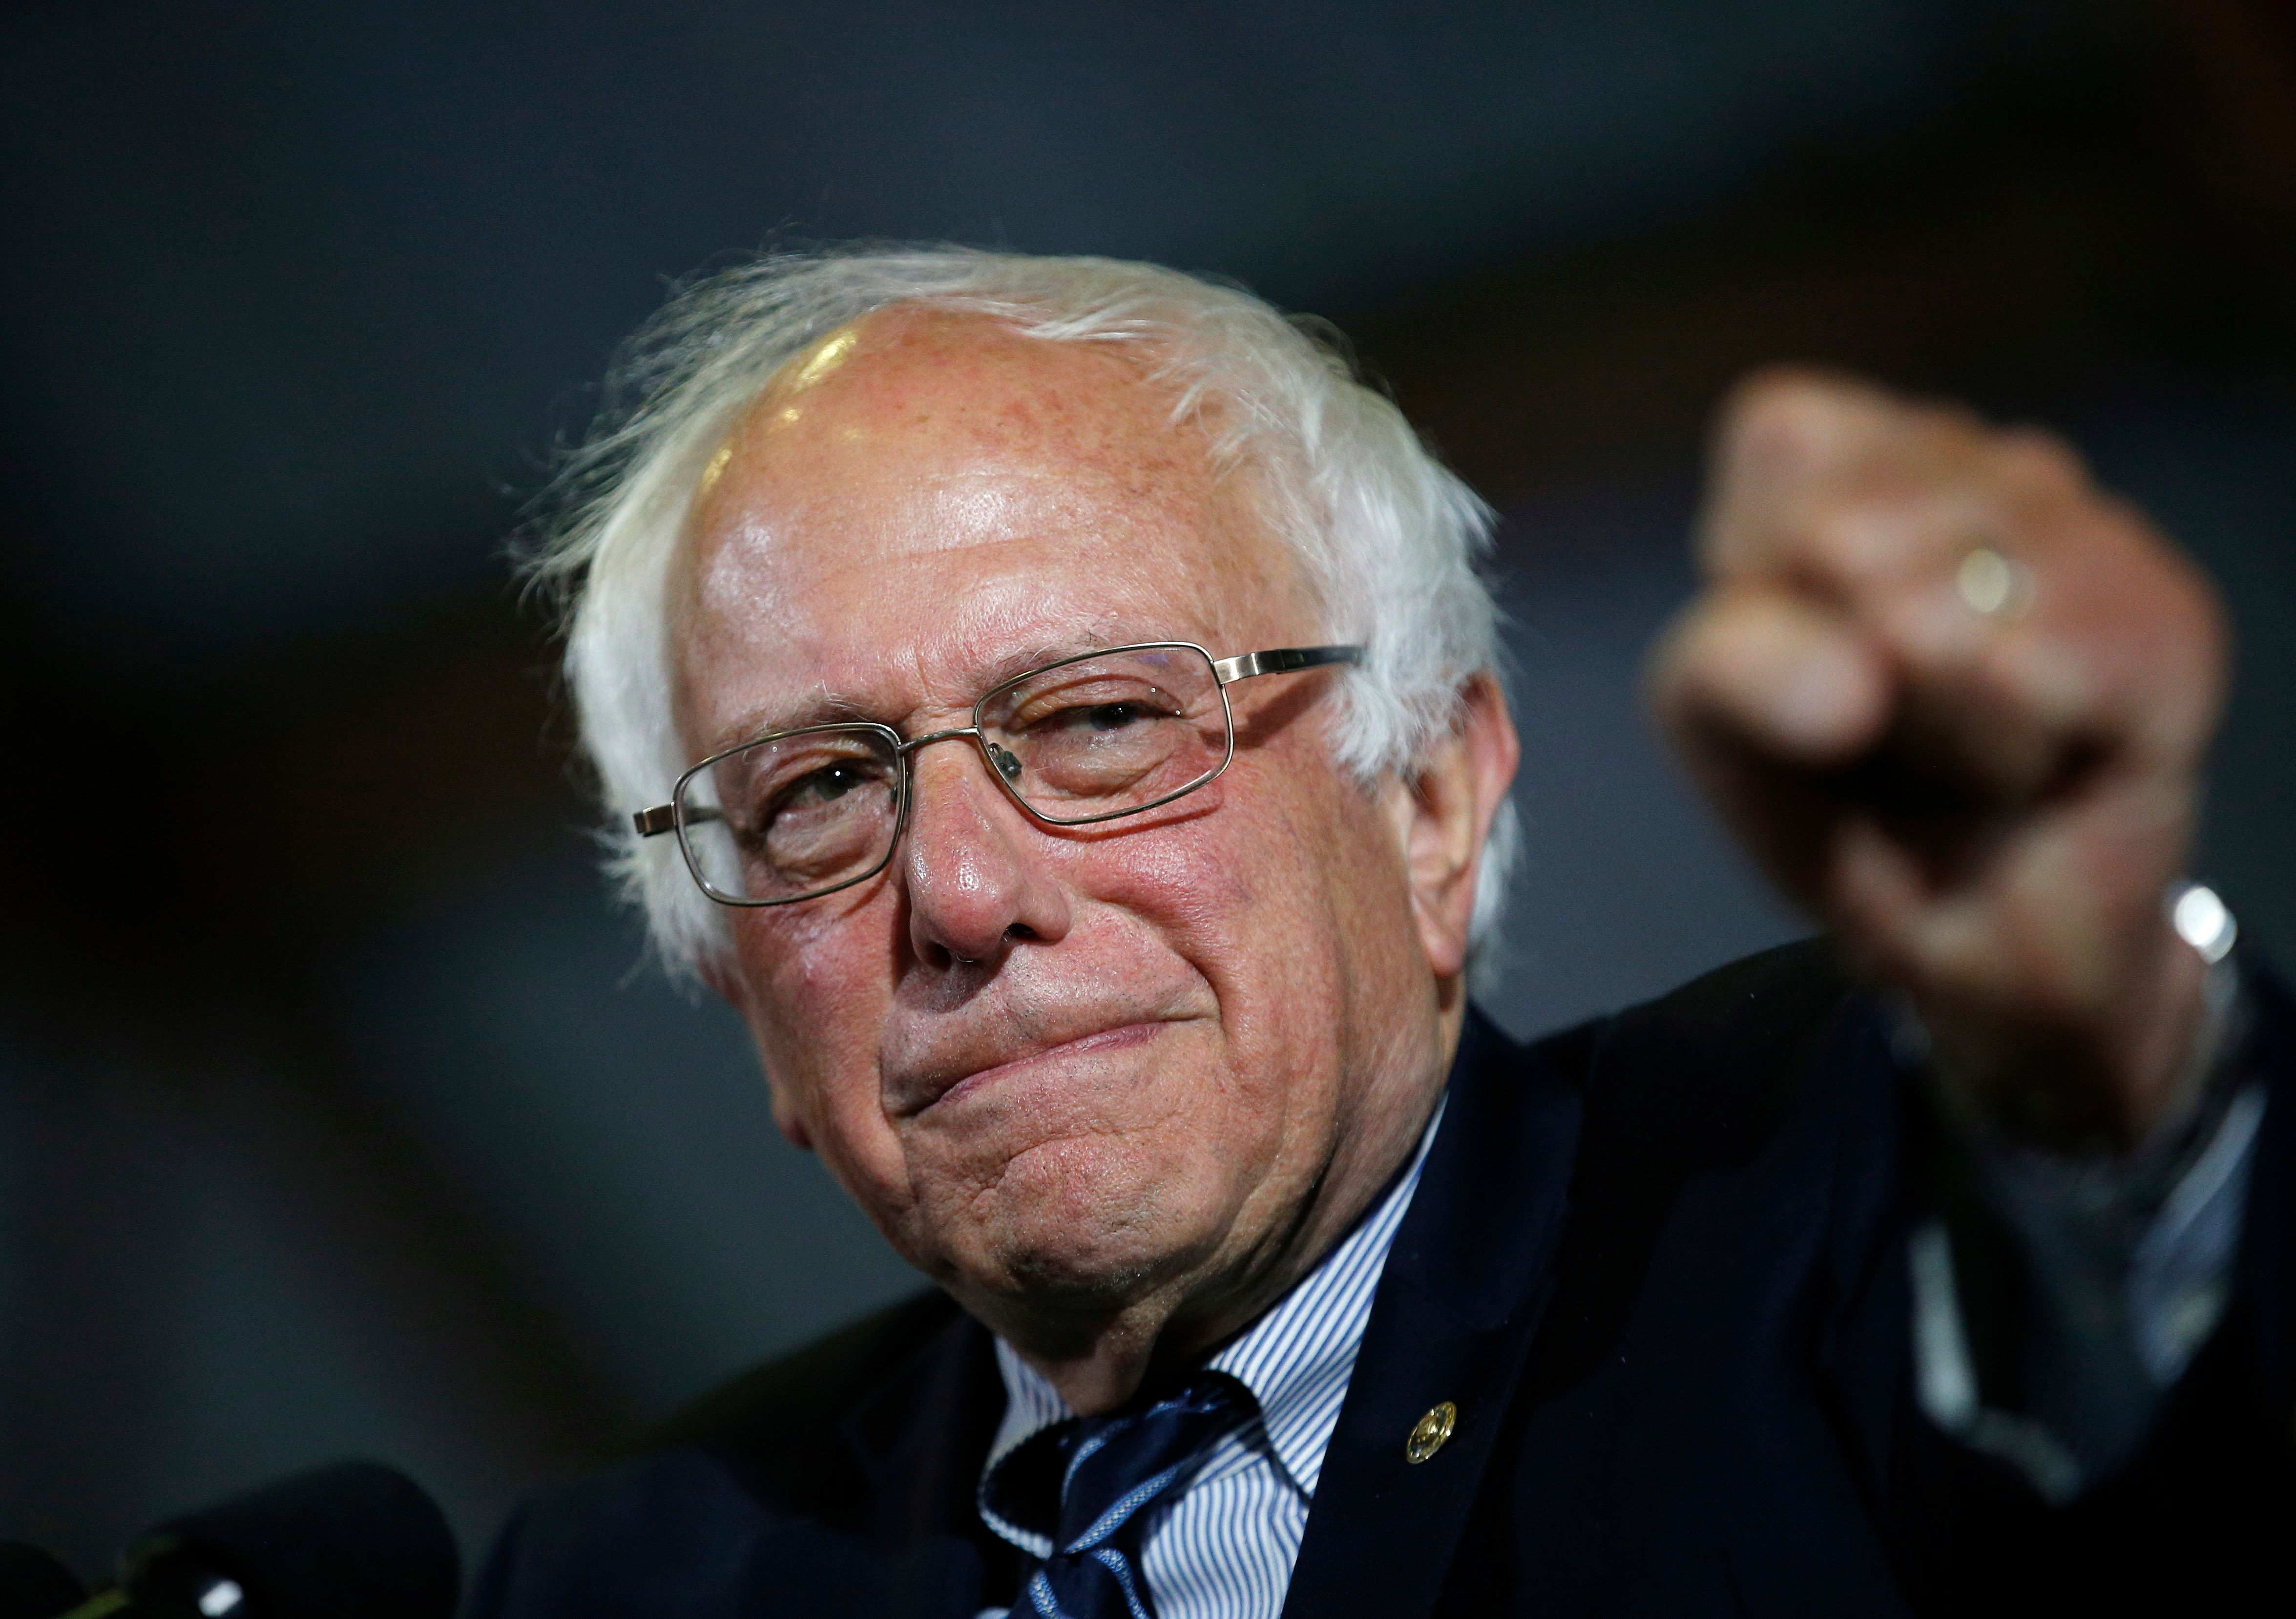 Democratic presidential candidate Sen. Bernie Sanders (I-Vt.) may not have enough delegates to win the nomination, but he and